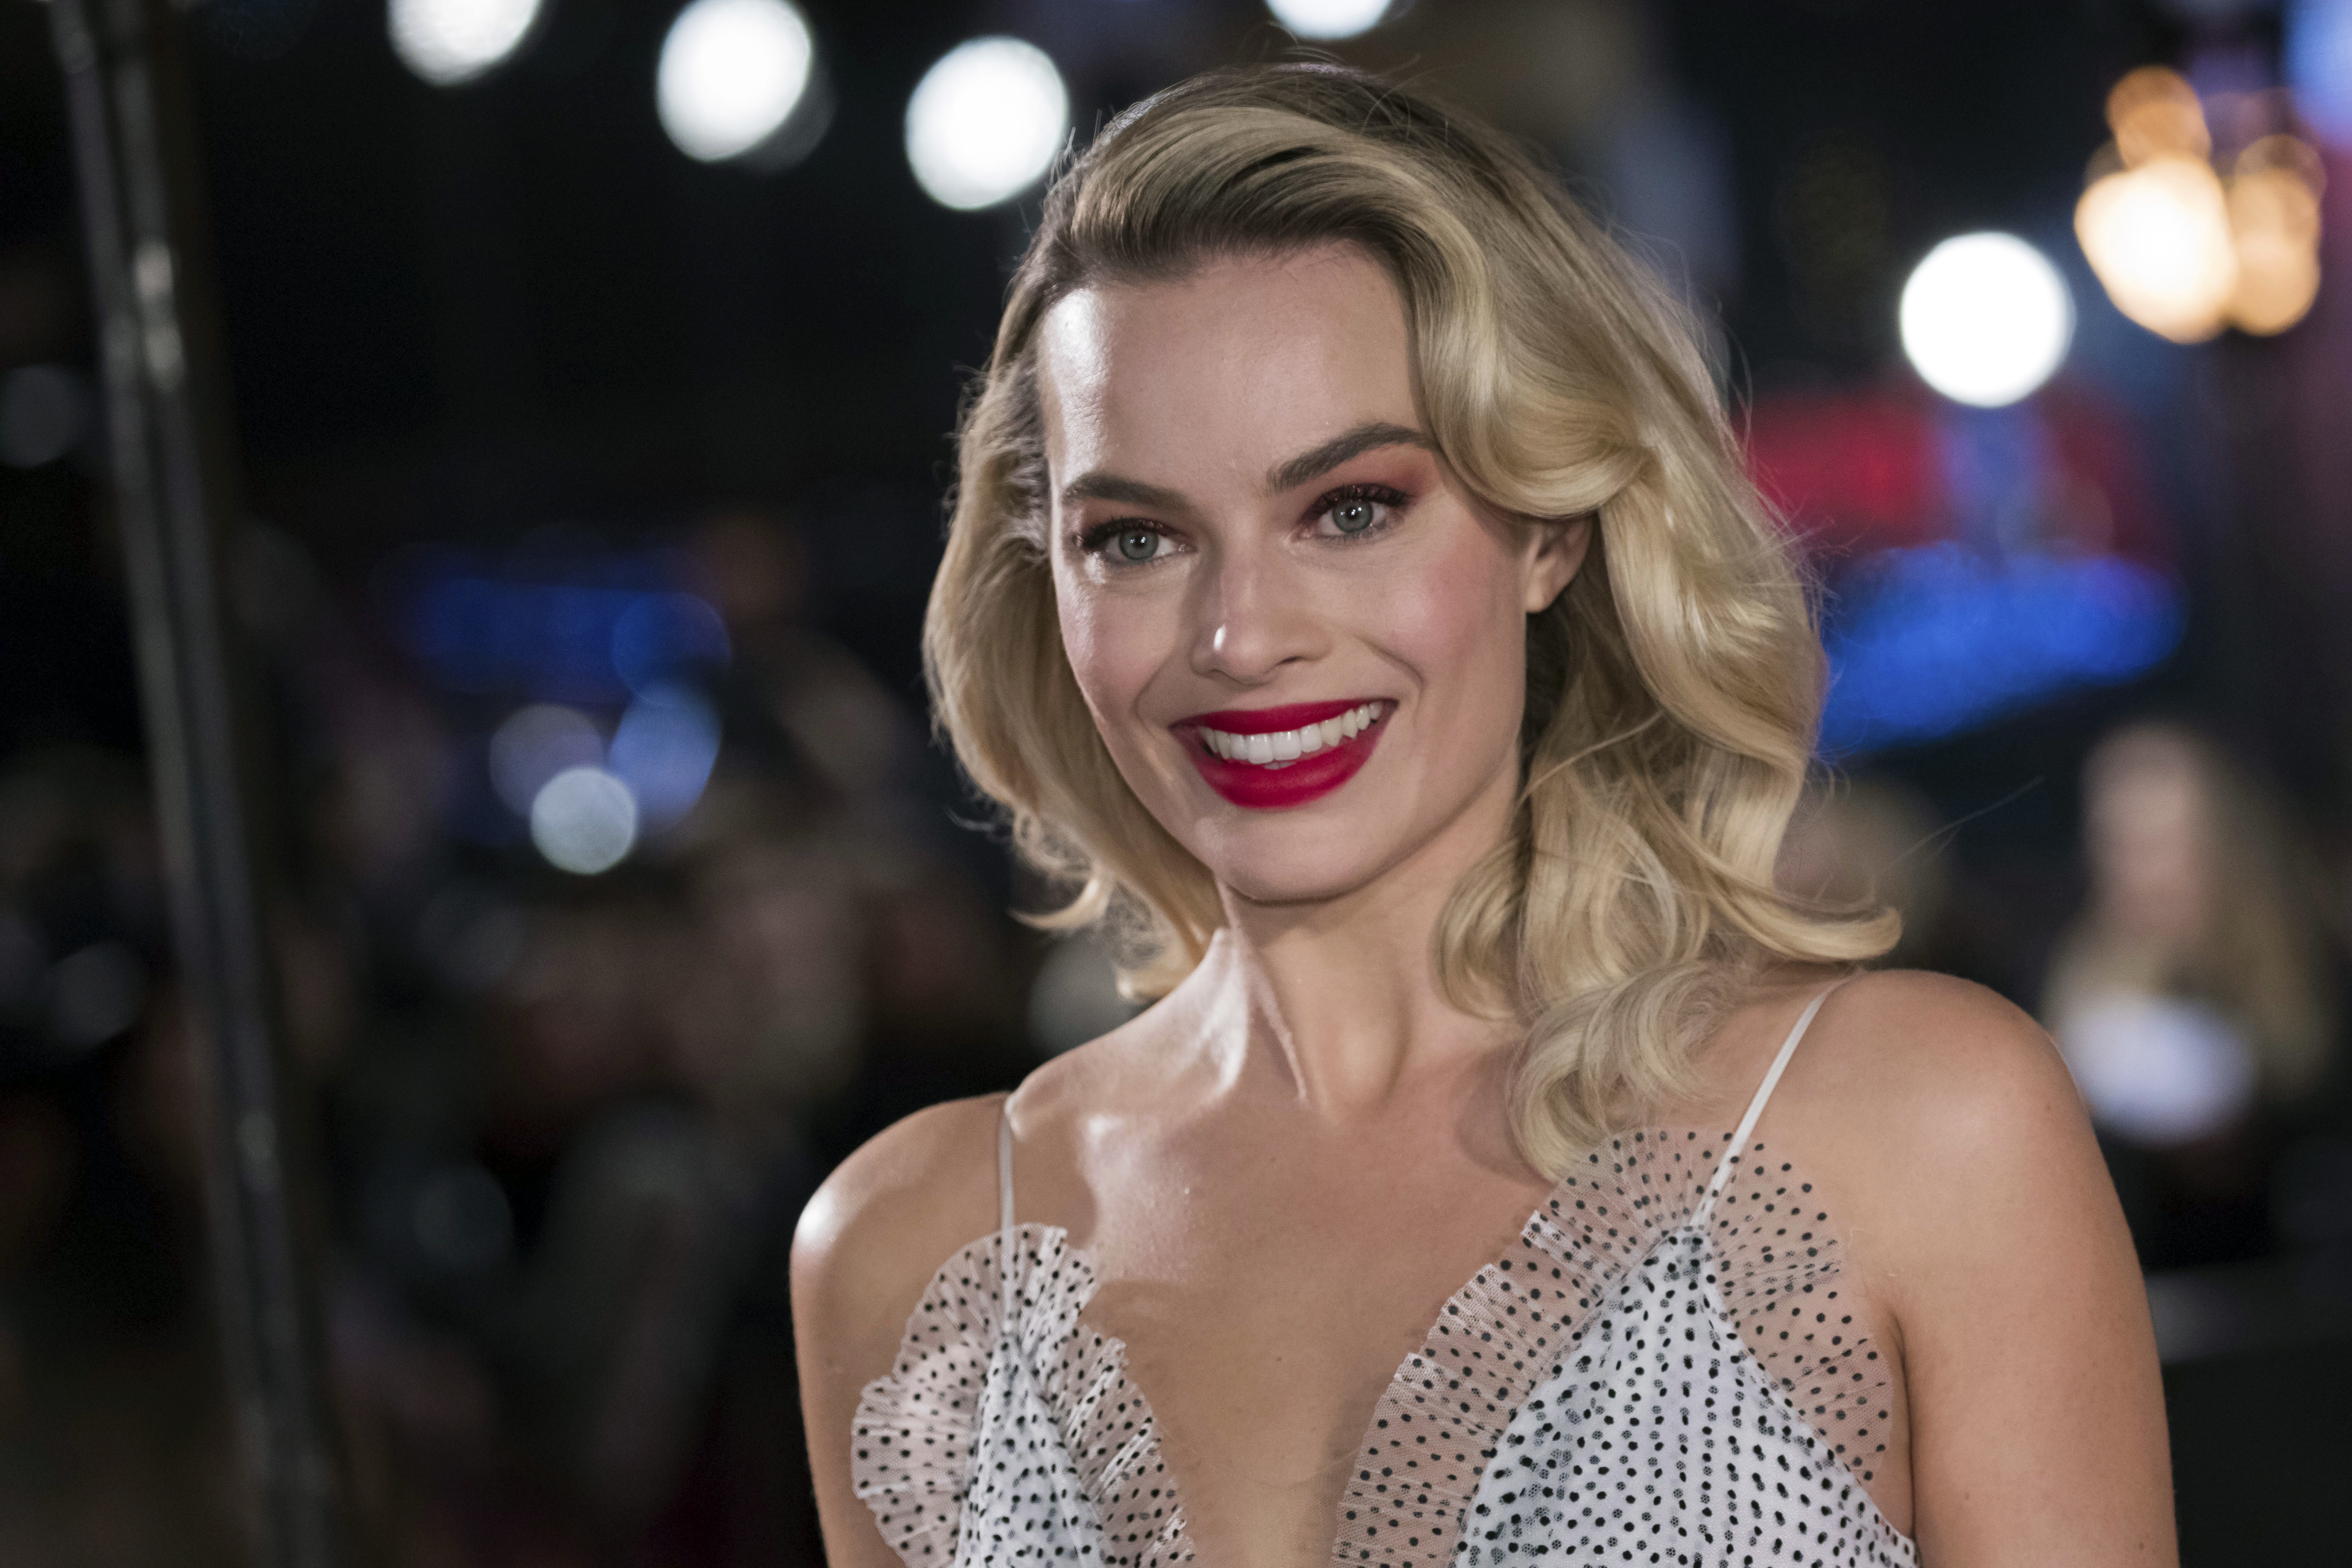 Margot Robbie says she feels so 'honoured' to take on the role. Credit: PA